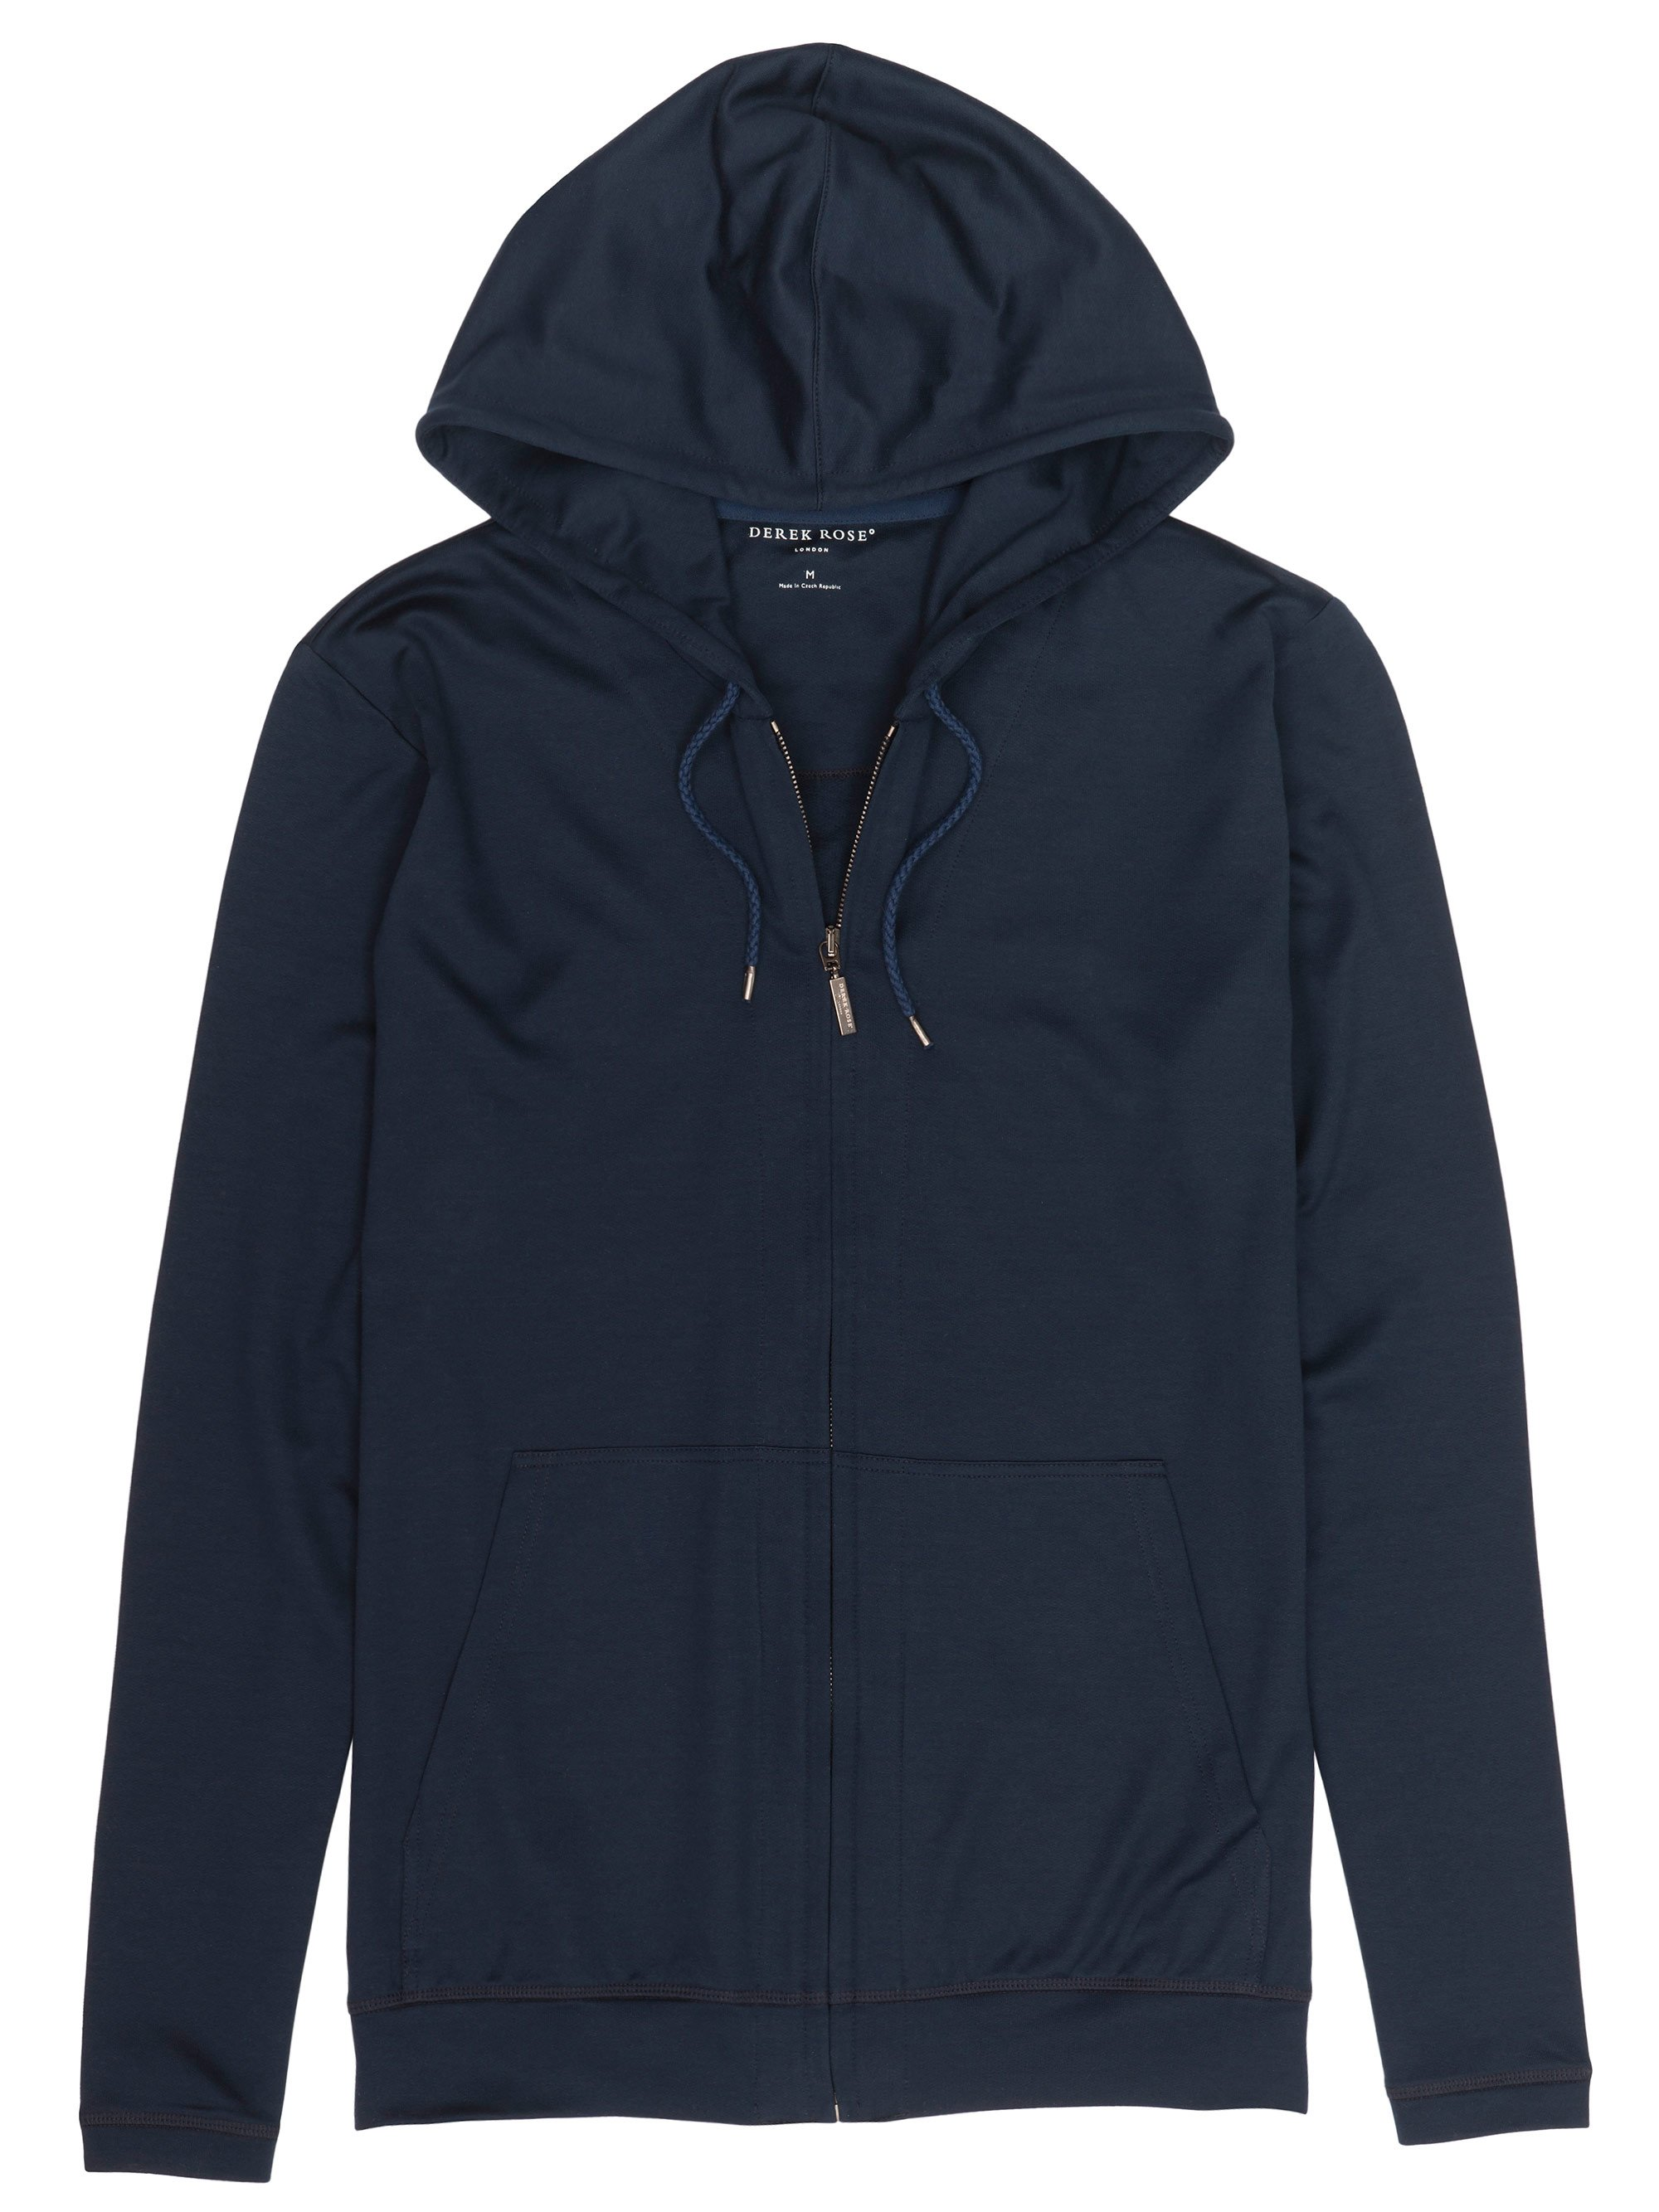 Men's Hoodie Toby Lightweight Loopback Cotton Navy